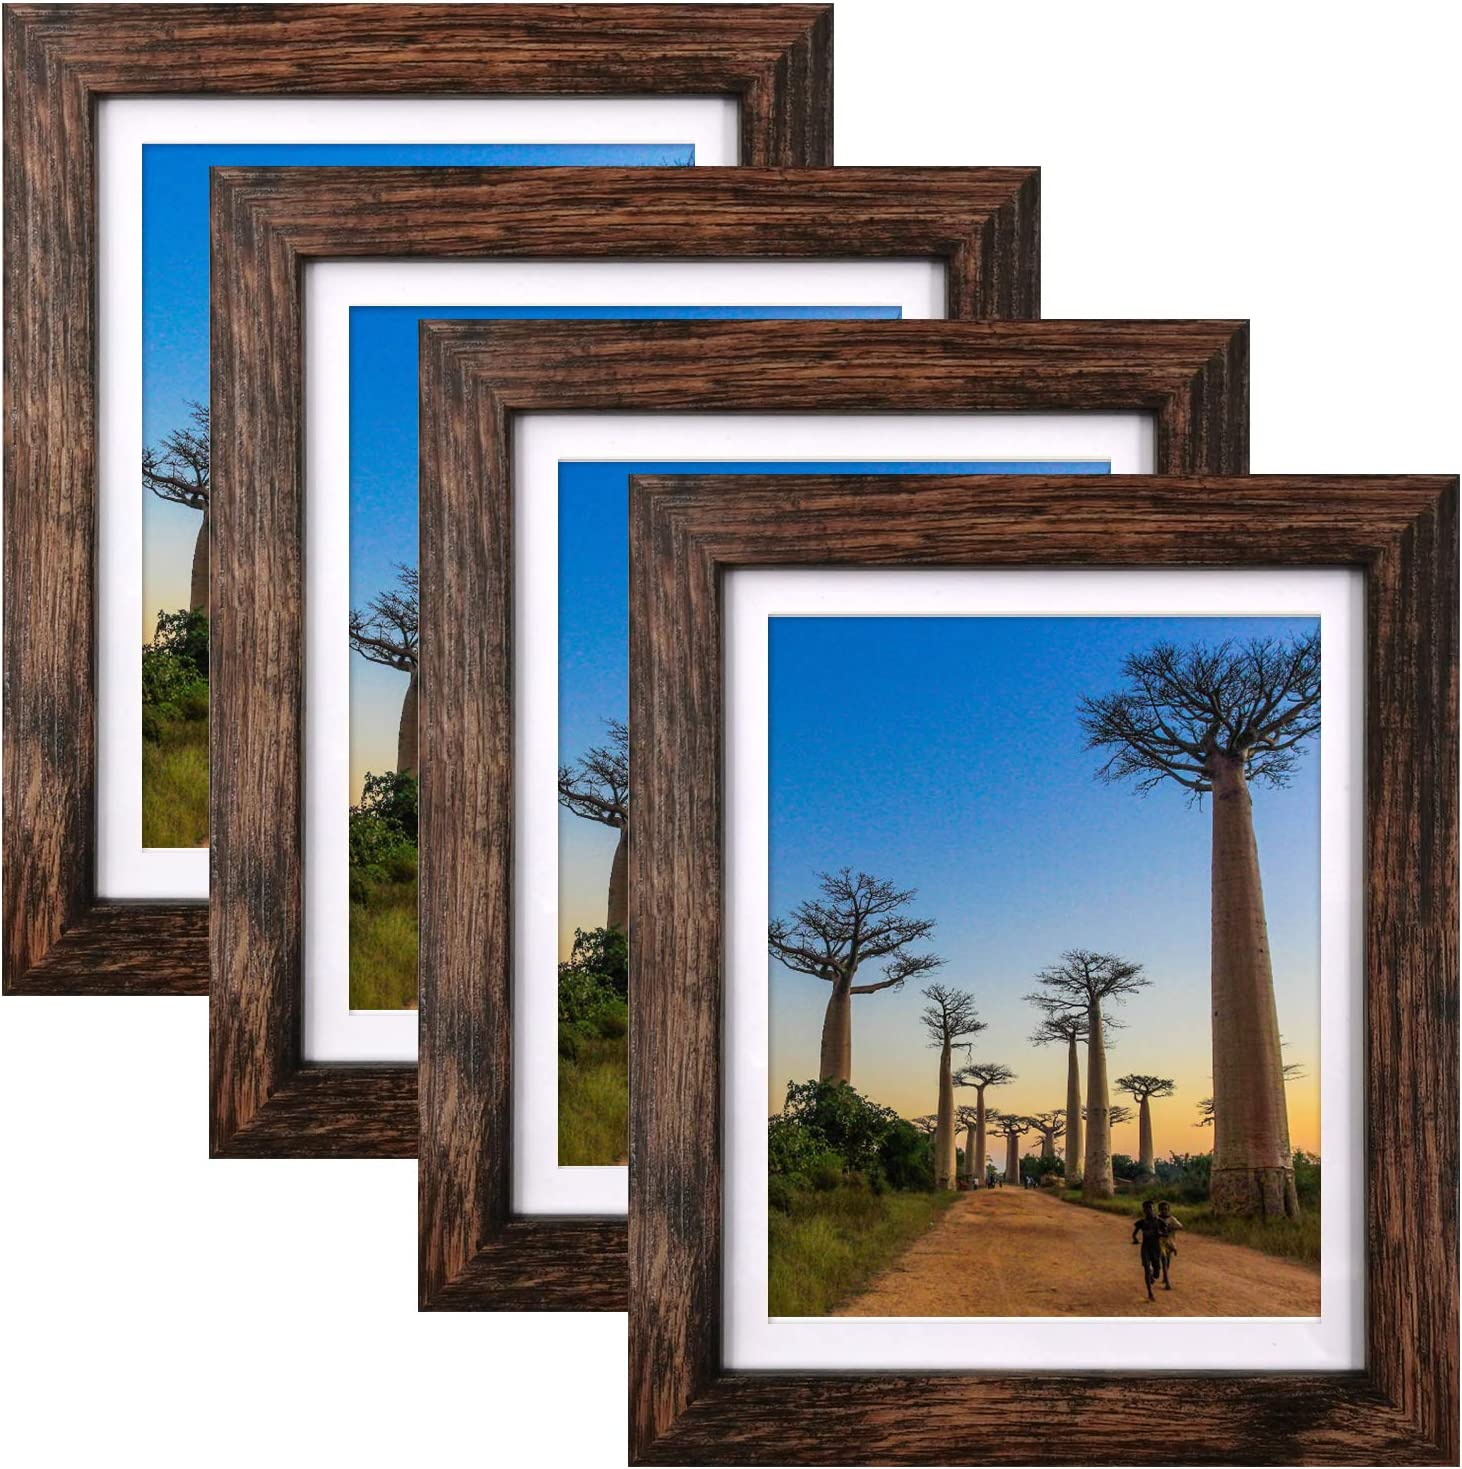 8x10 Picture safety Dallas Mall Frames Rustic Brown with Packs Mat f 4 Photo